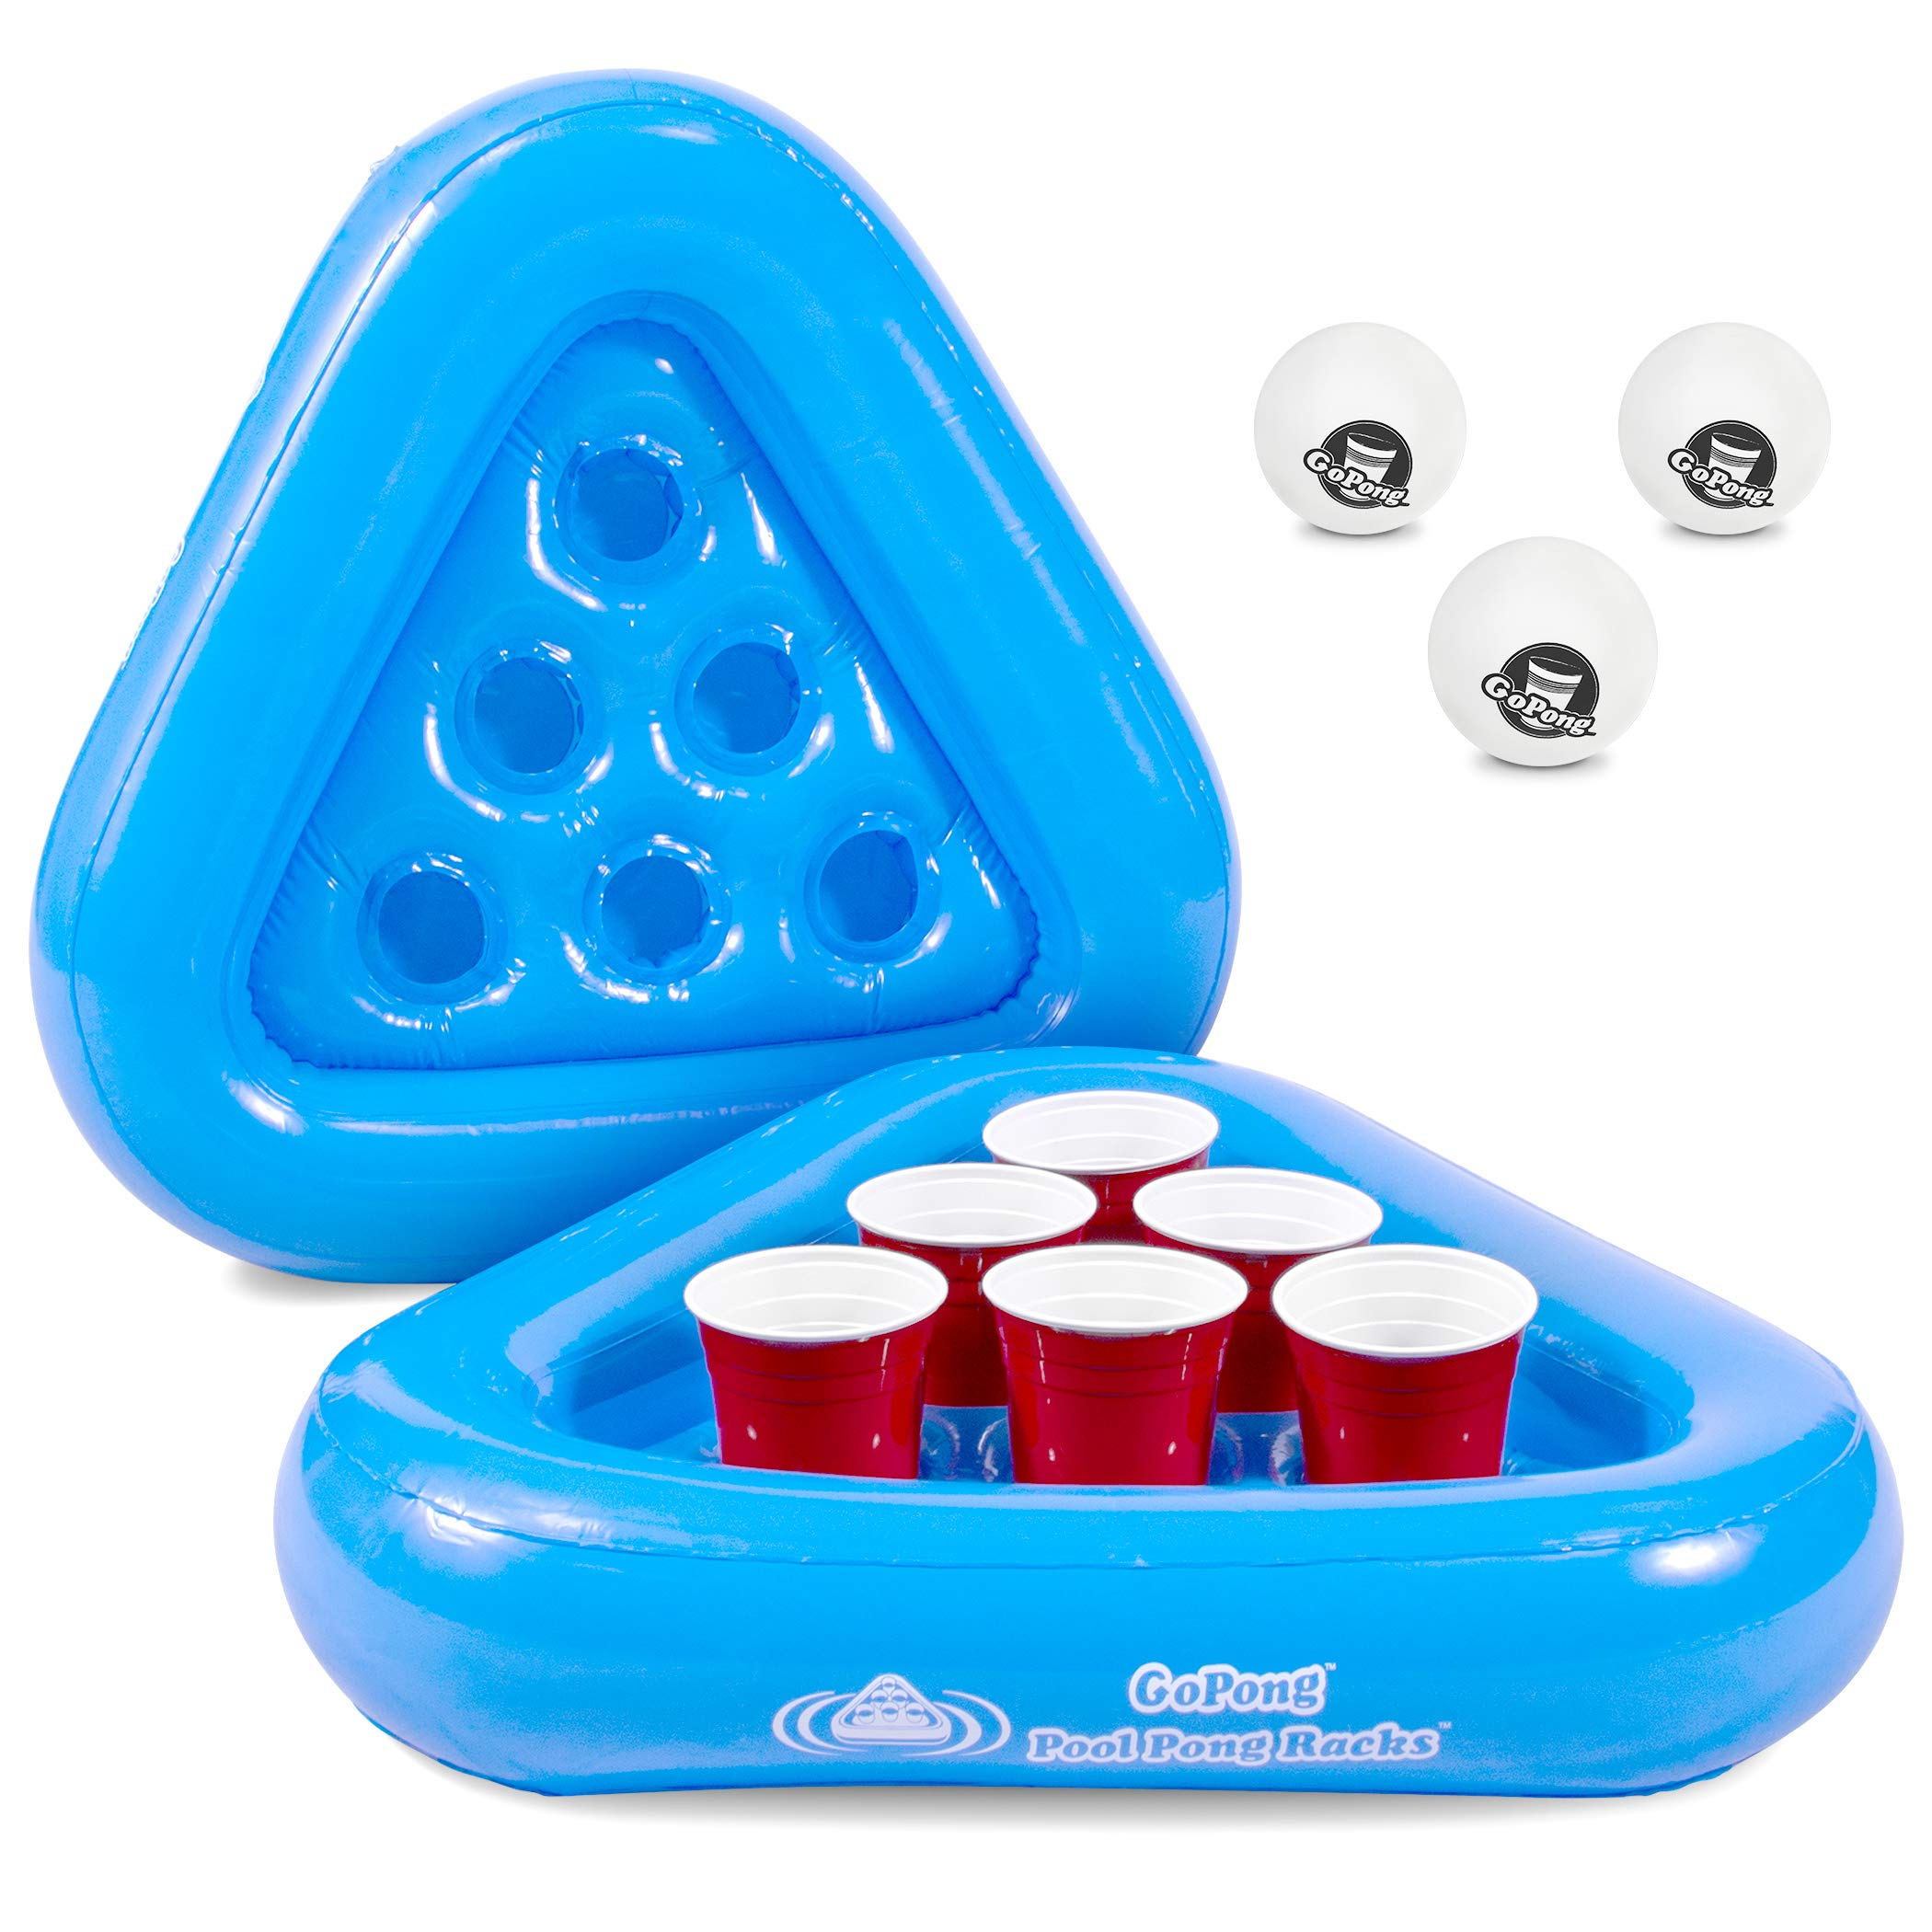 GoPong Pool Pong Rack Floating Beer Pong Set, Includes 2 Rafts and 3 Pong Balls by GoPong